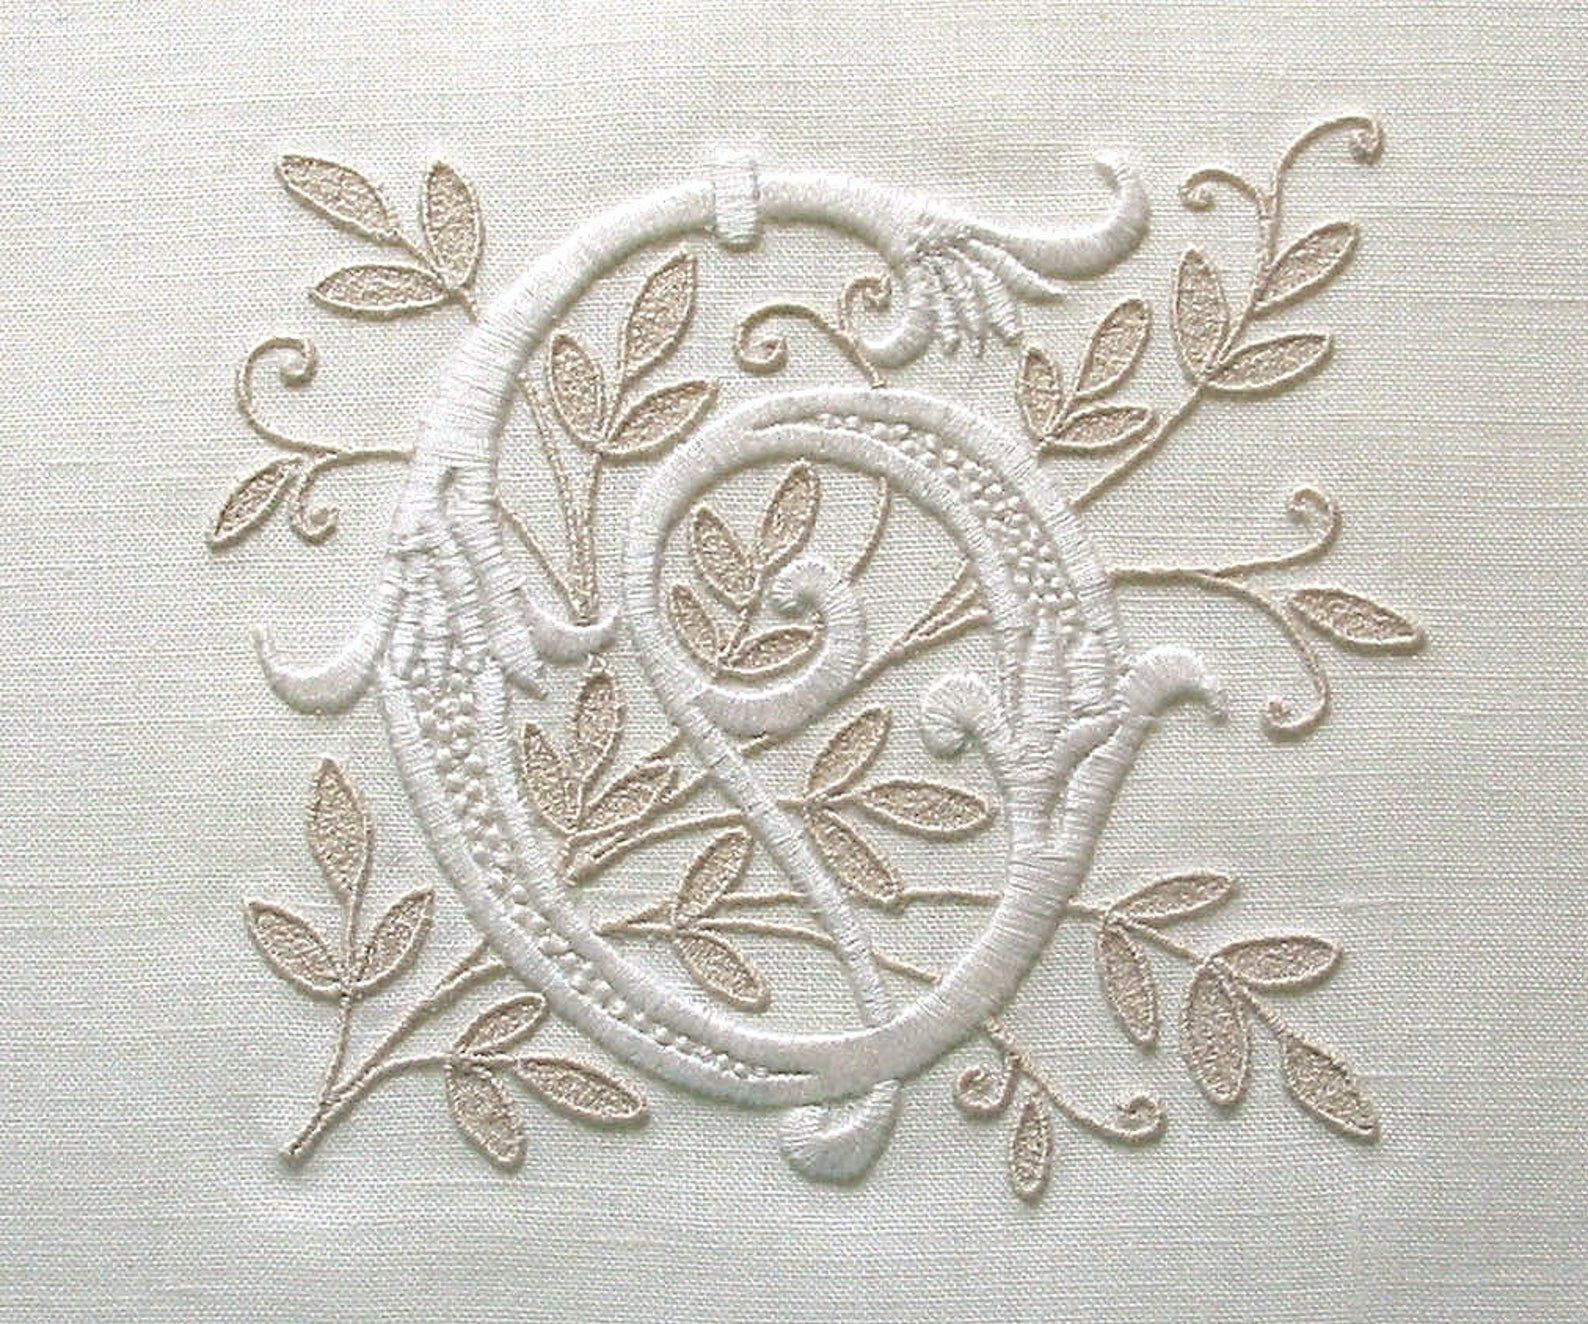 Custom Embroidered Monogram for Weddings Proms Celebrations Personalized Gift Hand Embroidery Machine Embroidery Custom Mono Made to Order